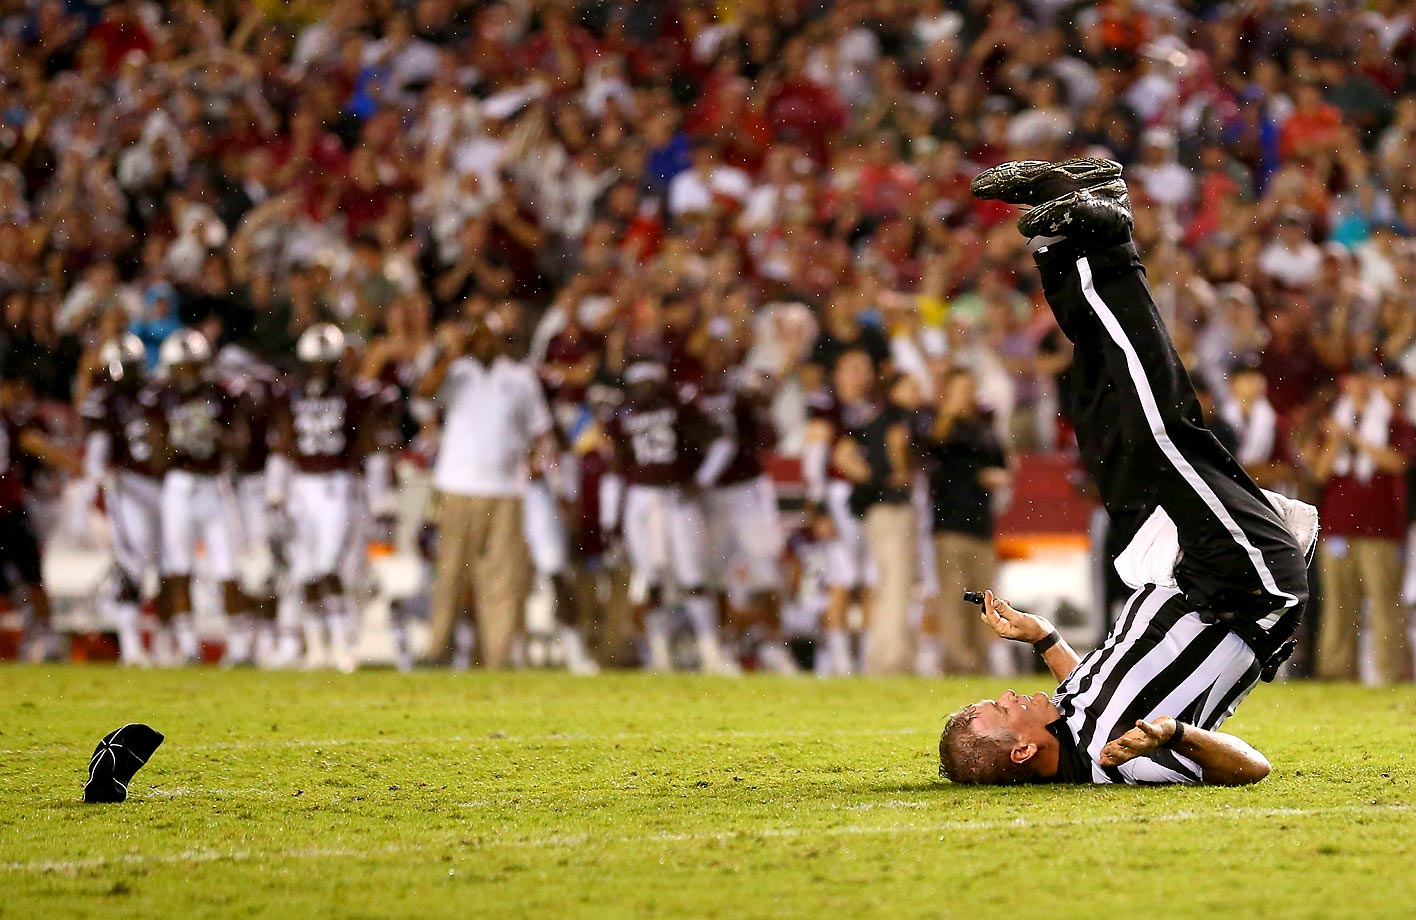 Umpire Russ Pulley flips over during the Georgia-South Carolina game.